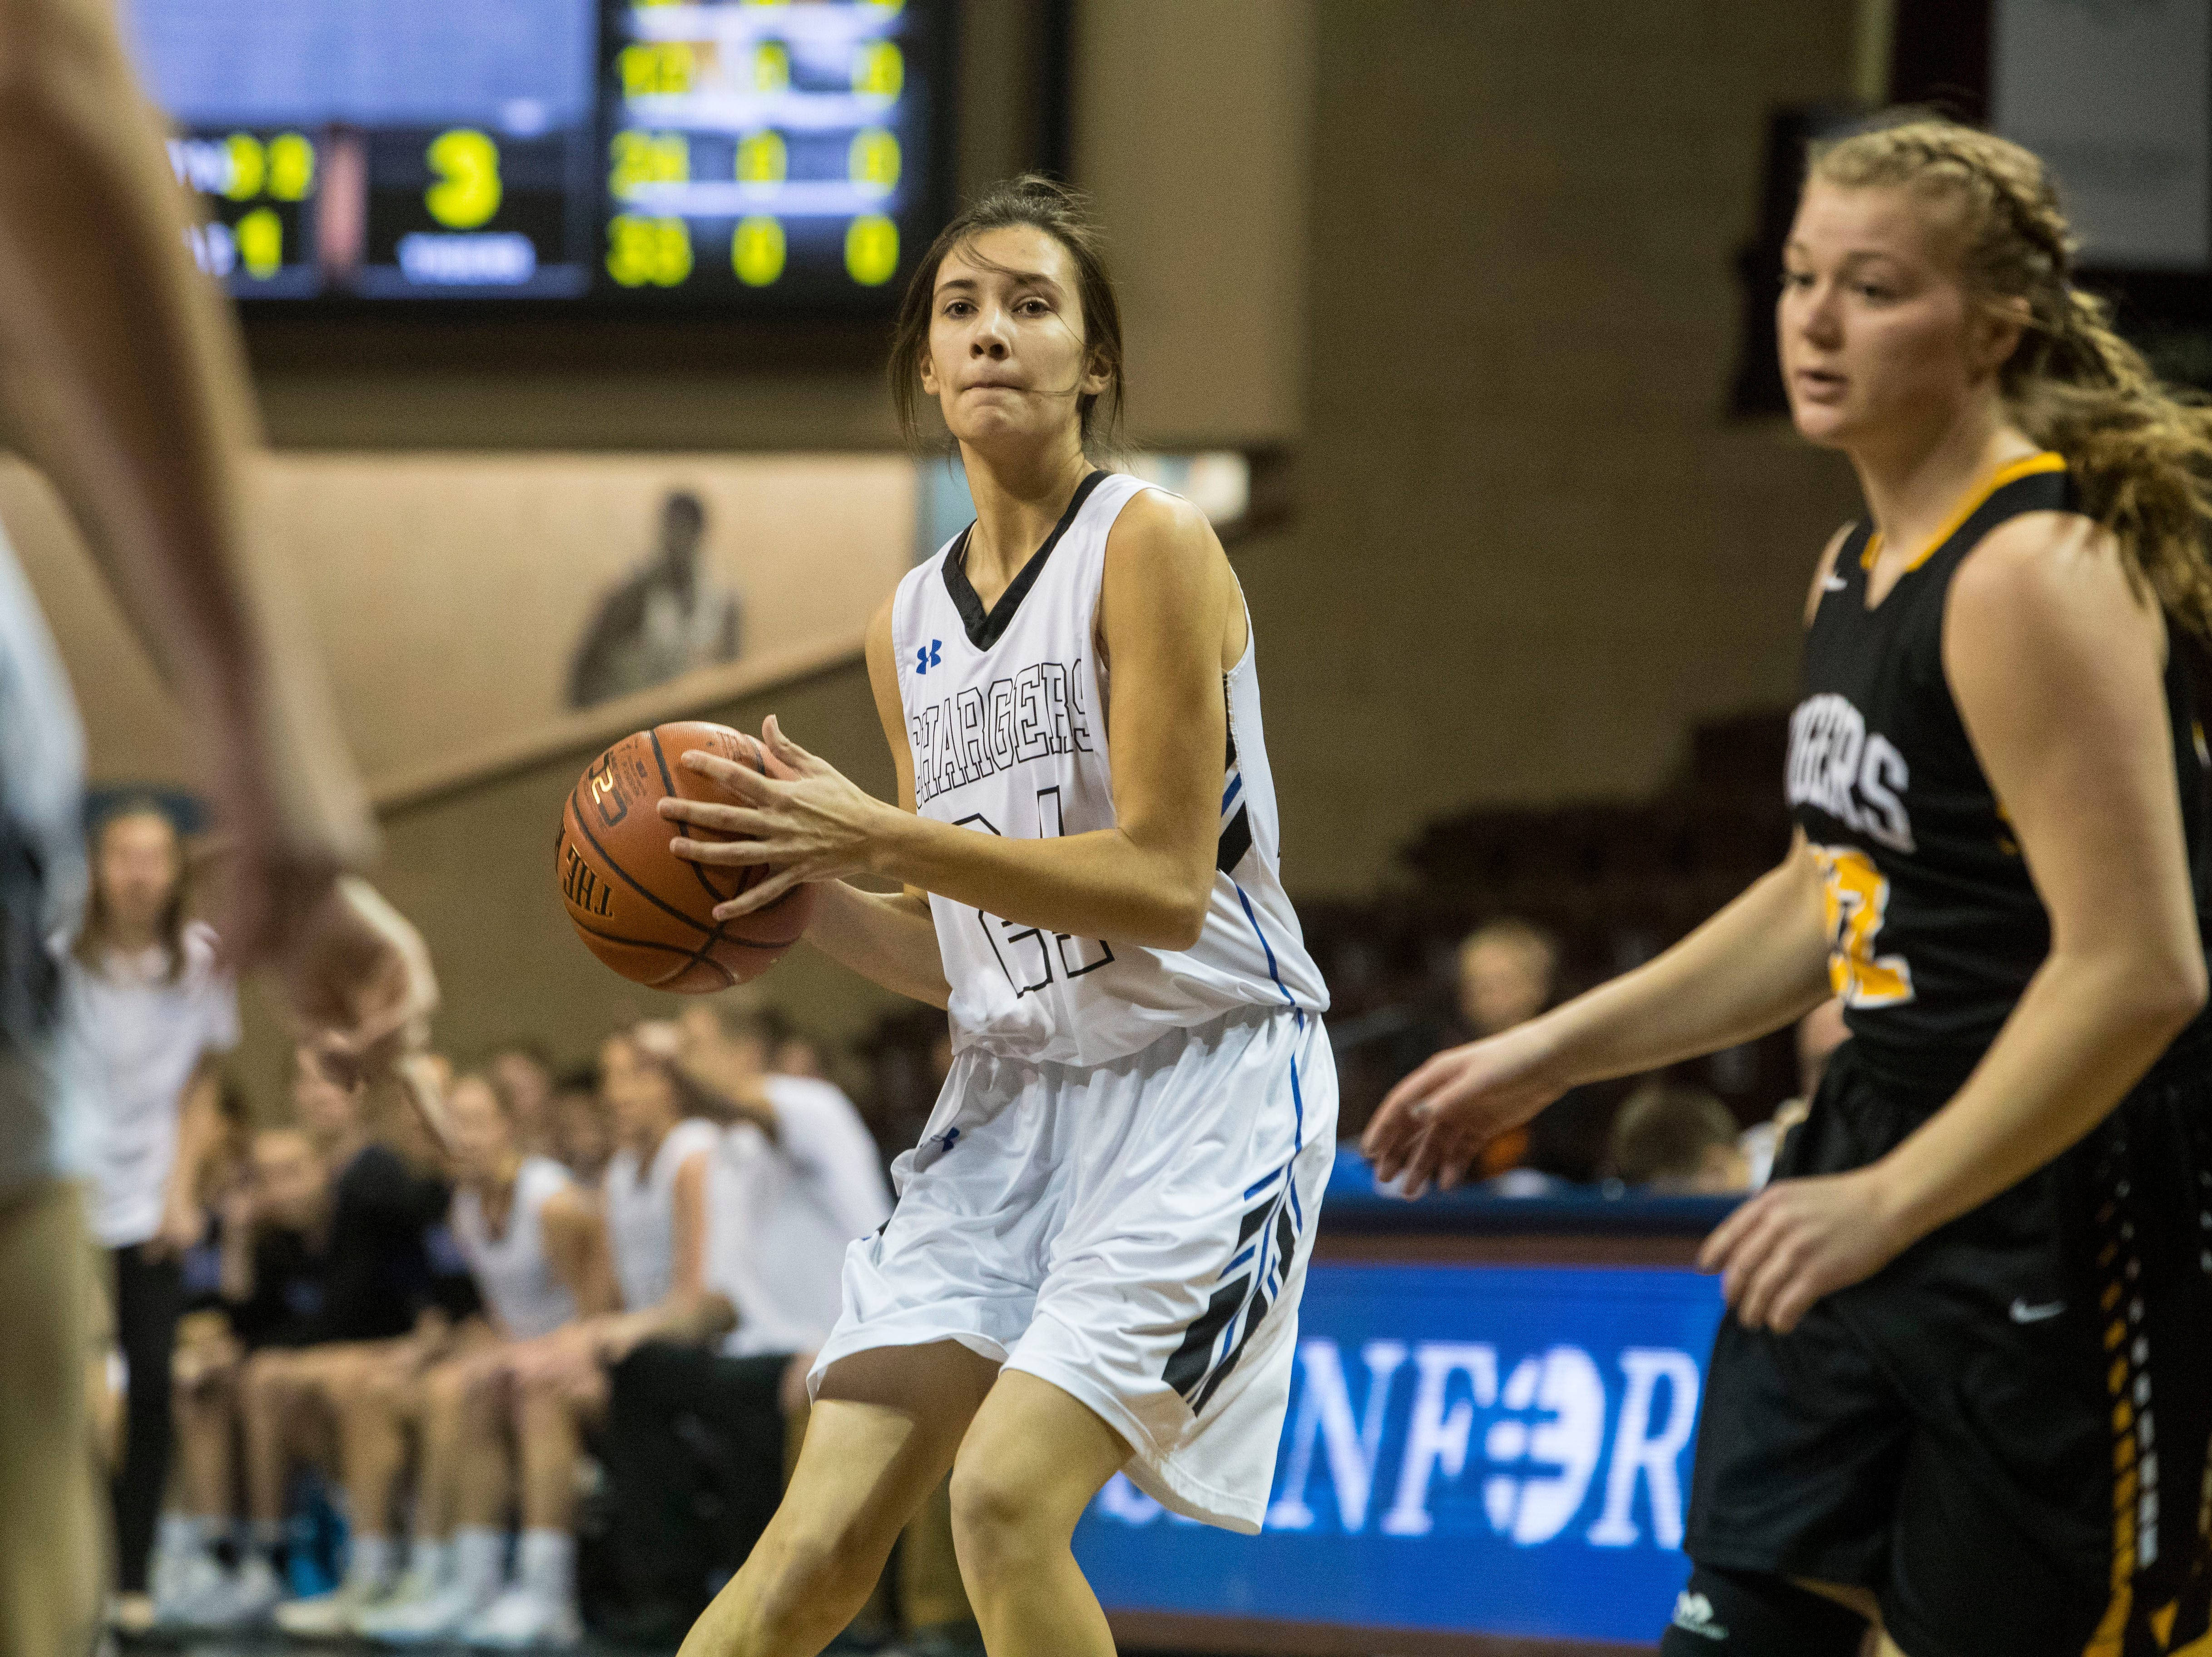 Sioux Falls Christian's Courtney Kellenberger (24) looks to pass the ball during a game against Hutchinson at the Hoop City Classic at the Sanford Pentagon in Sioux Falls, S.D., Saturday, Dec. 29, 2018.